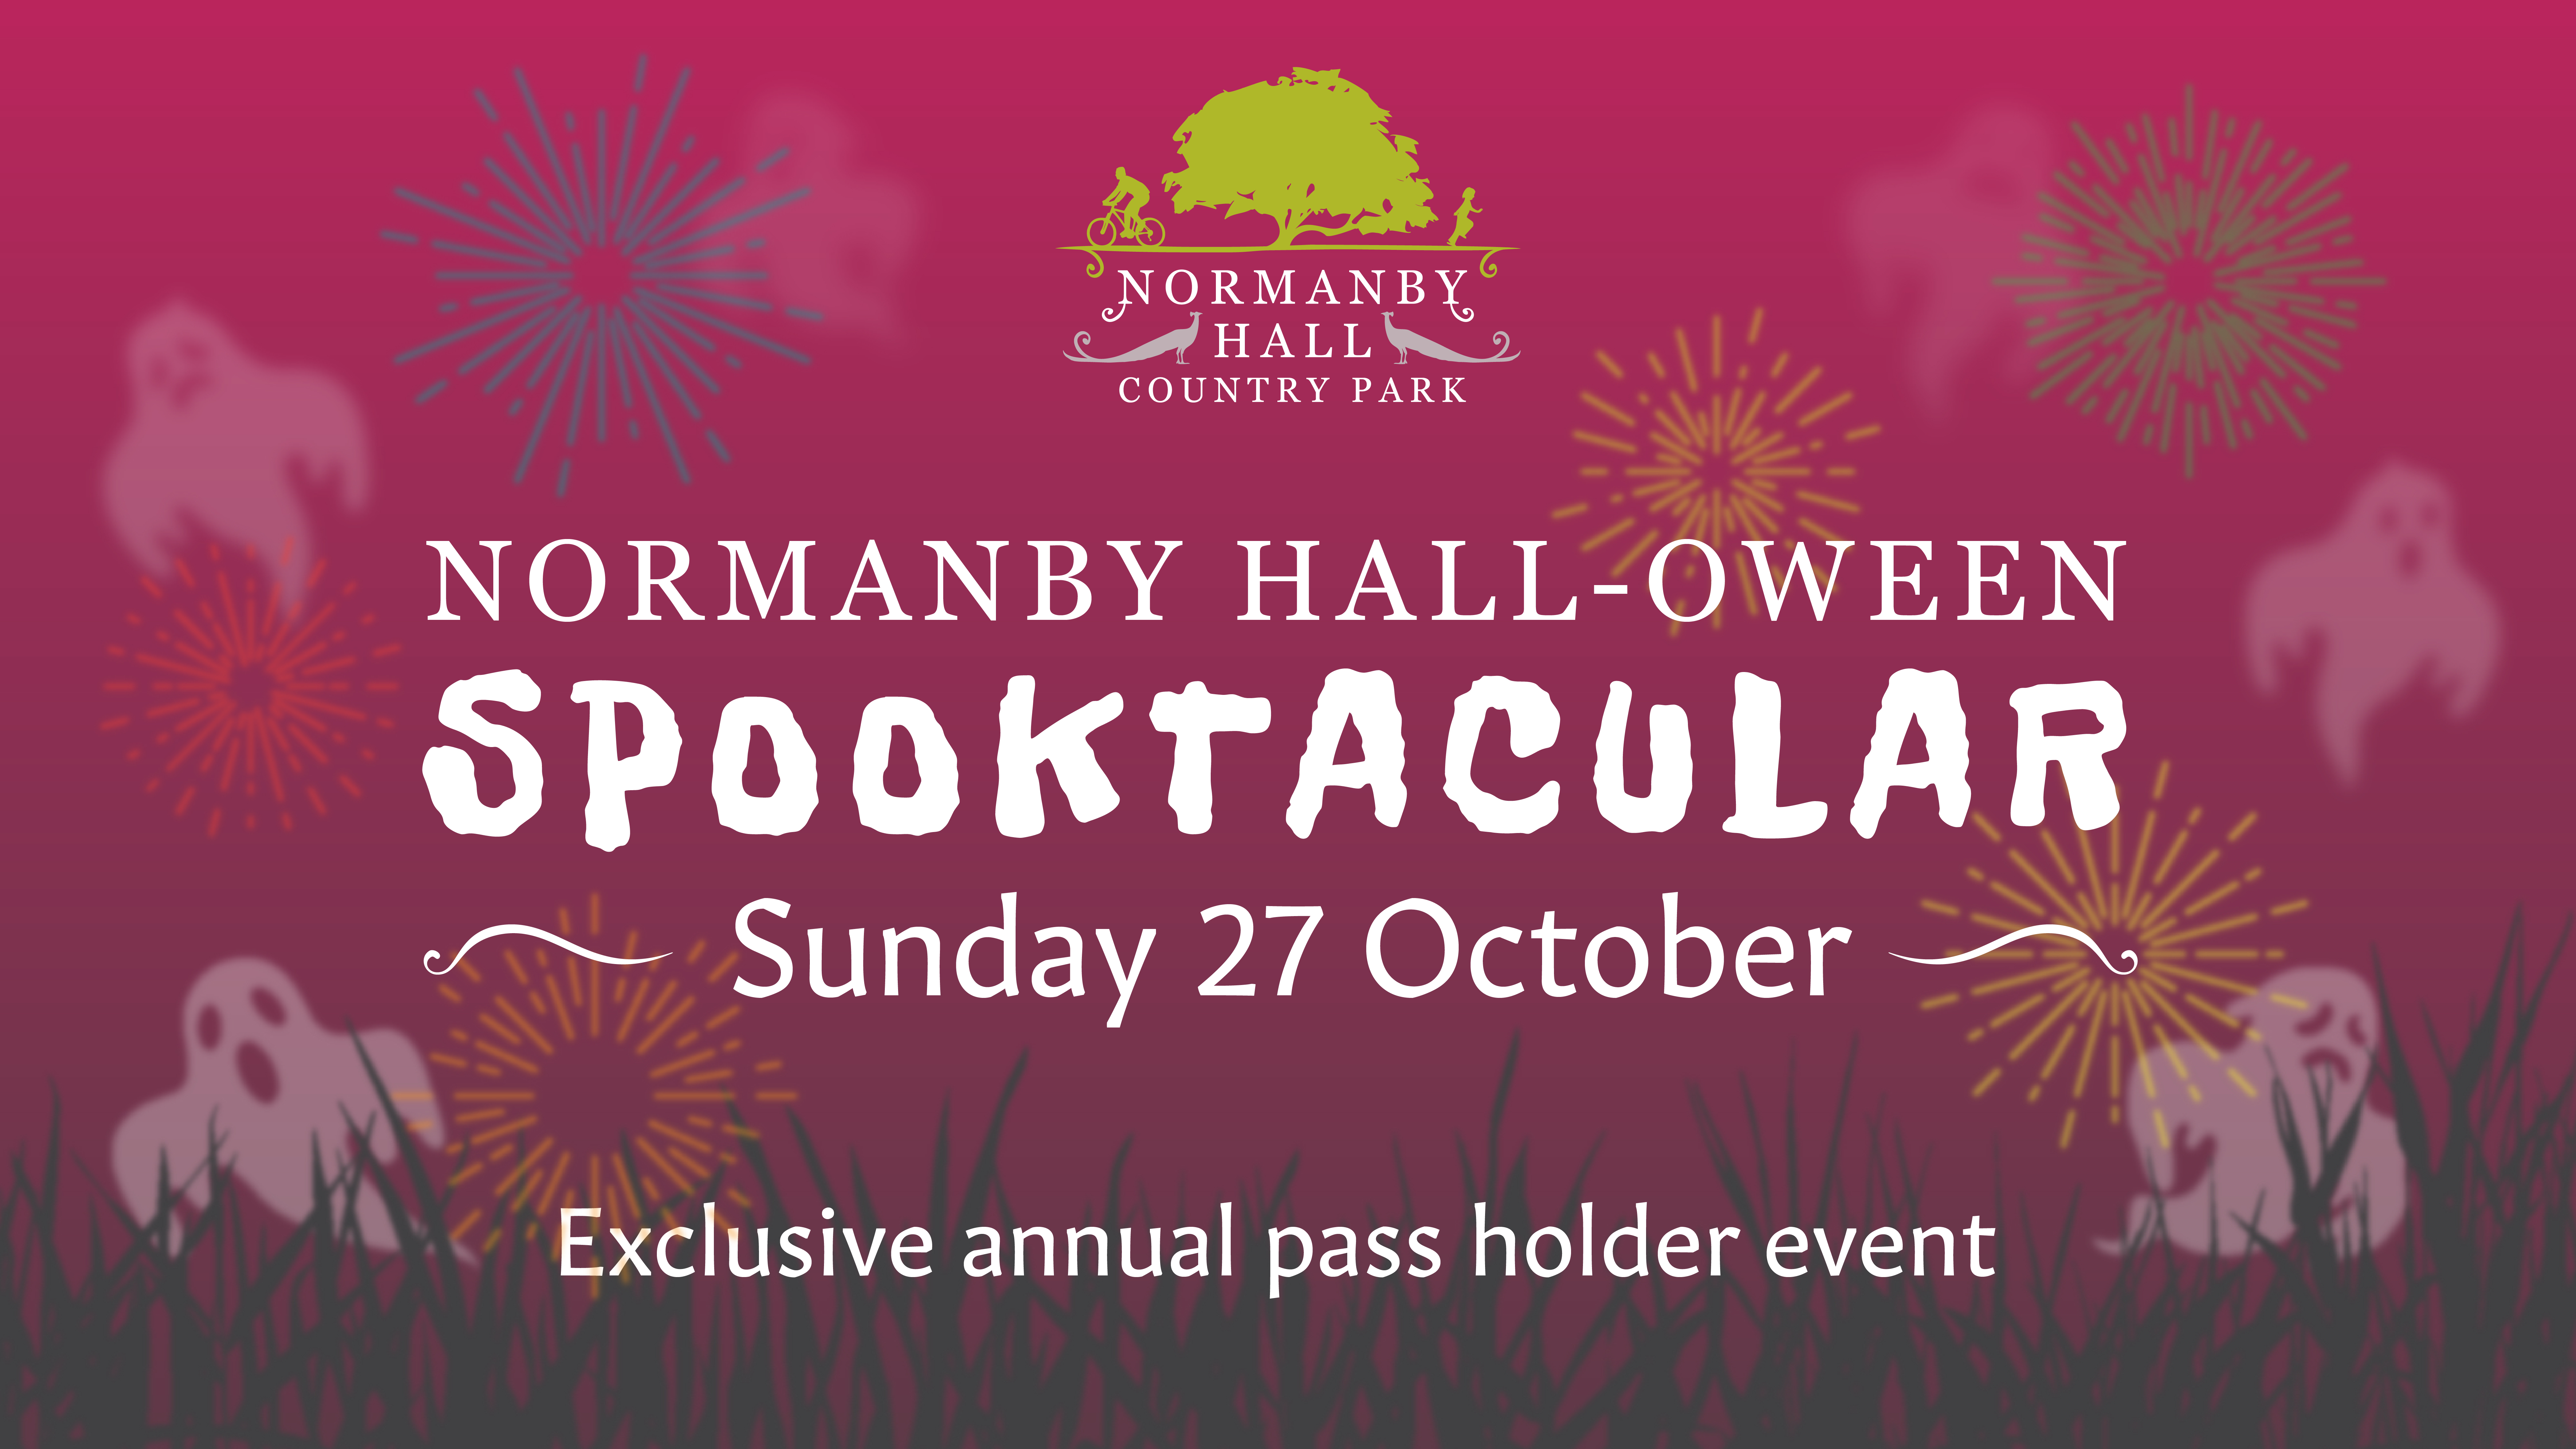 Normanby Hall-oween Spooktacular! graphic